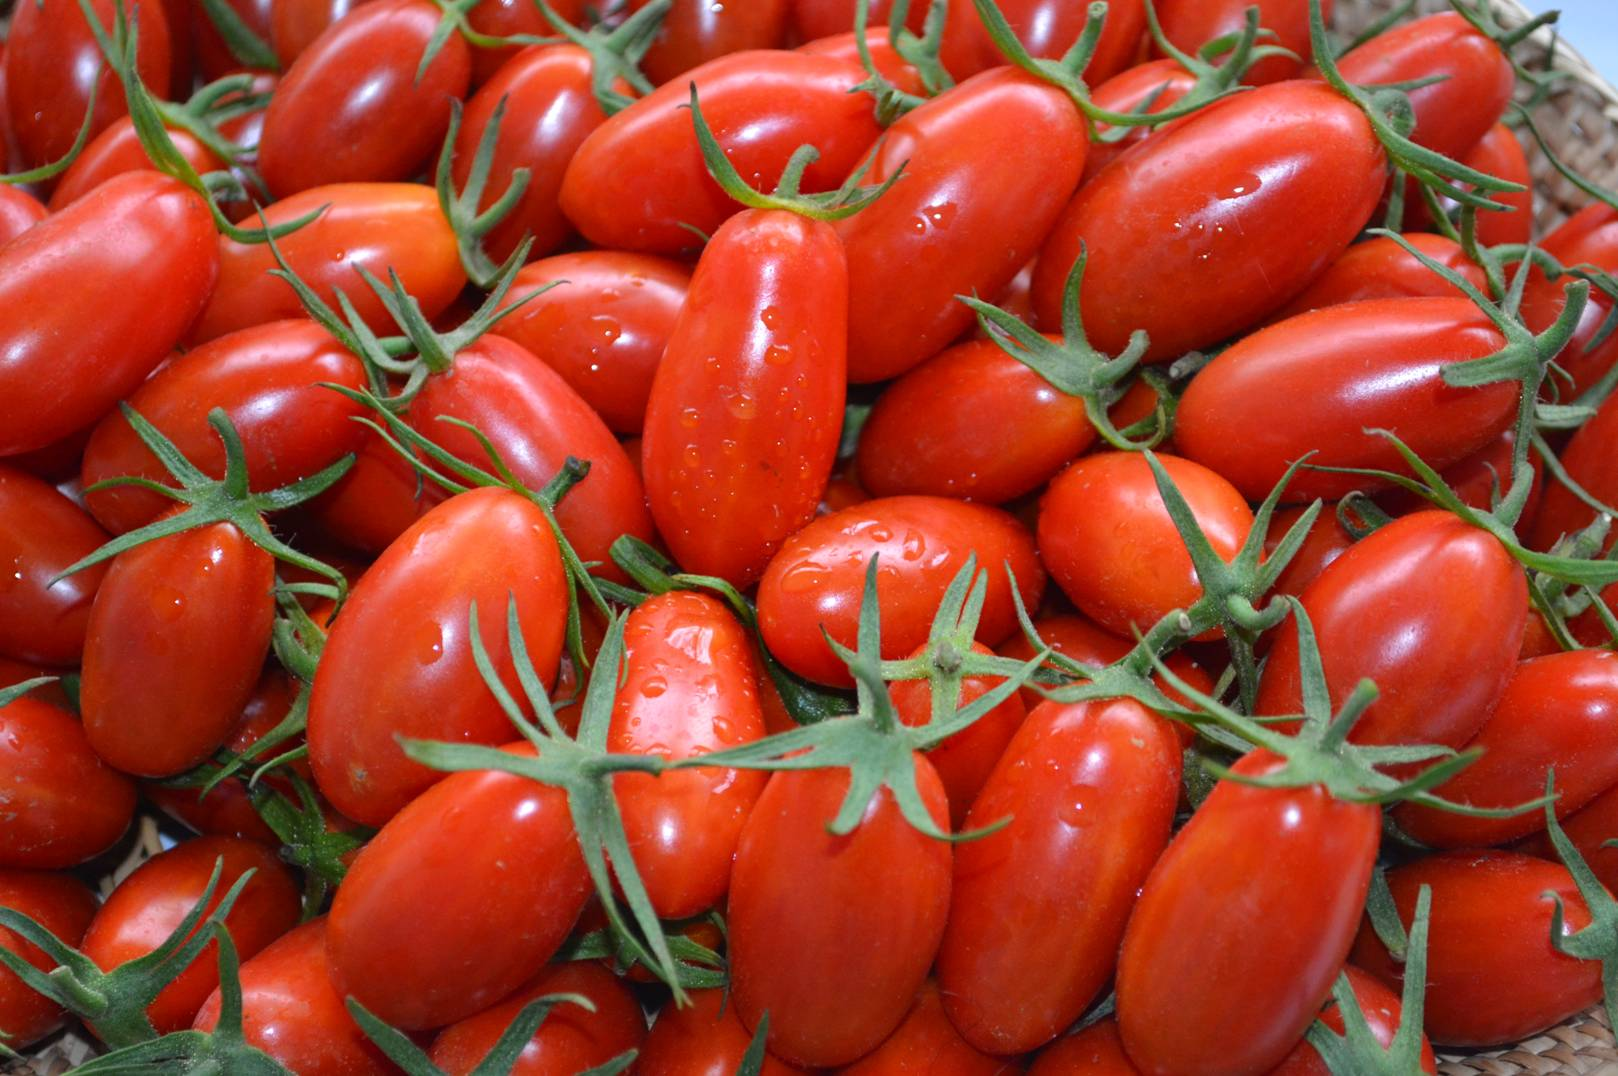 Application of carbonized rice husks improved the quality of tomato